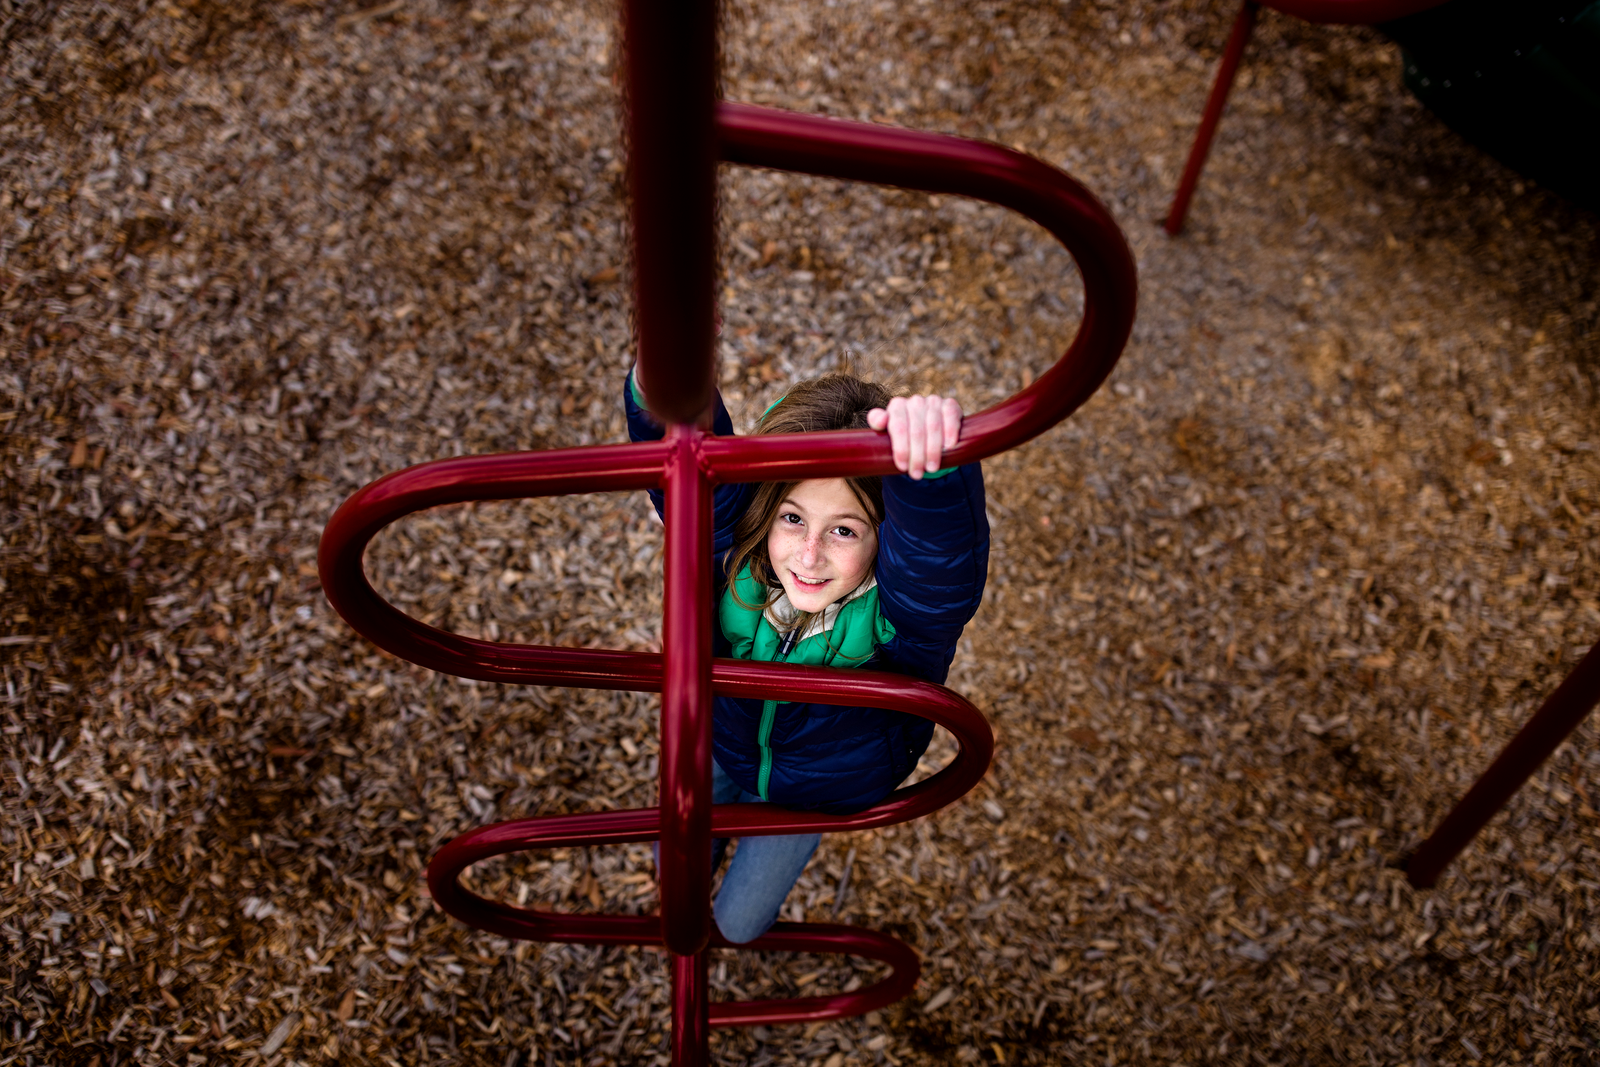 family photographer, columbus, ga, atlanta, documentary, photojournalism, playground, climbing, ker-fox photography_8298